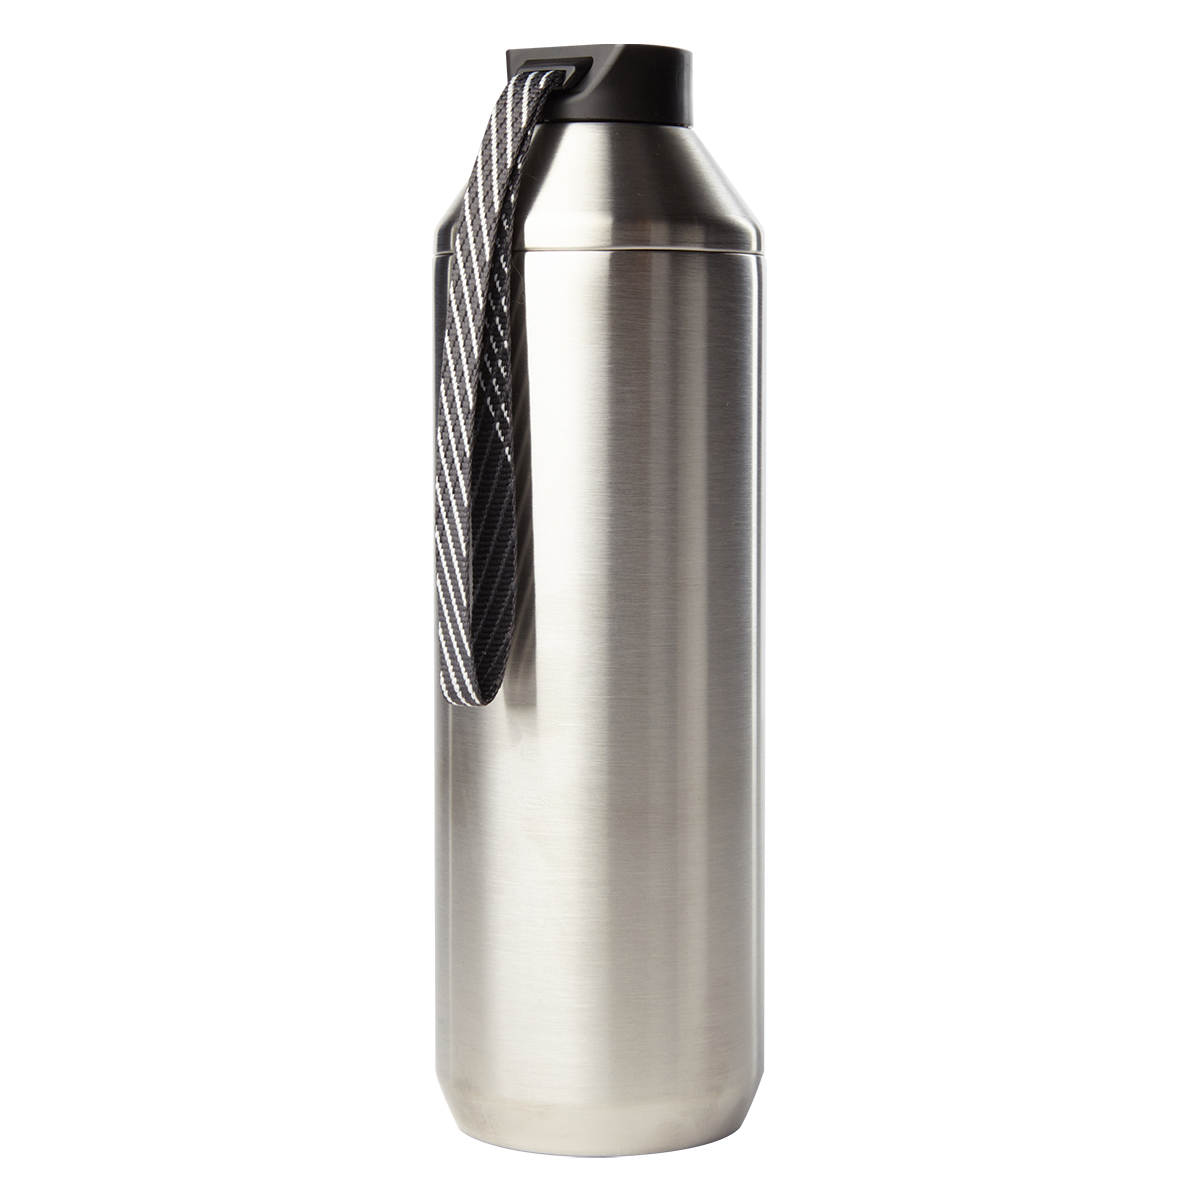 Hydrogen 20 Oz. Stainless Steel Water Bottle